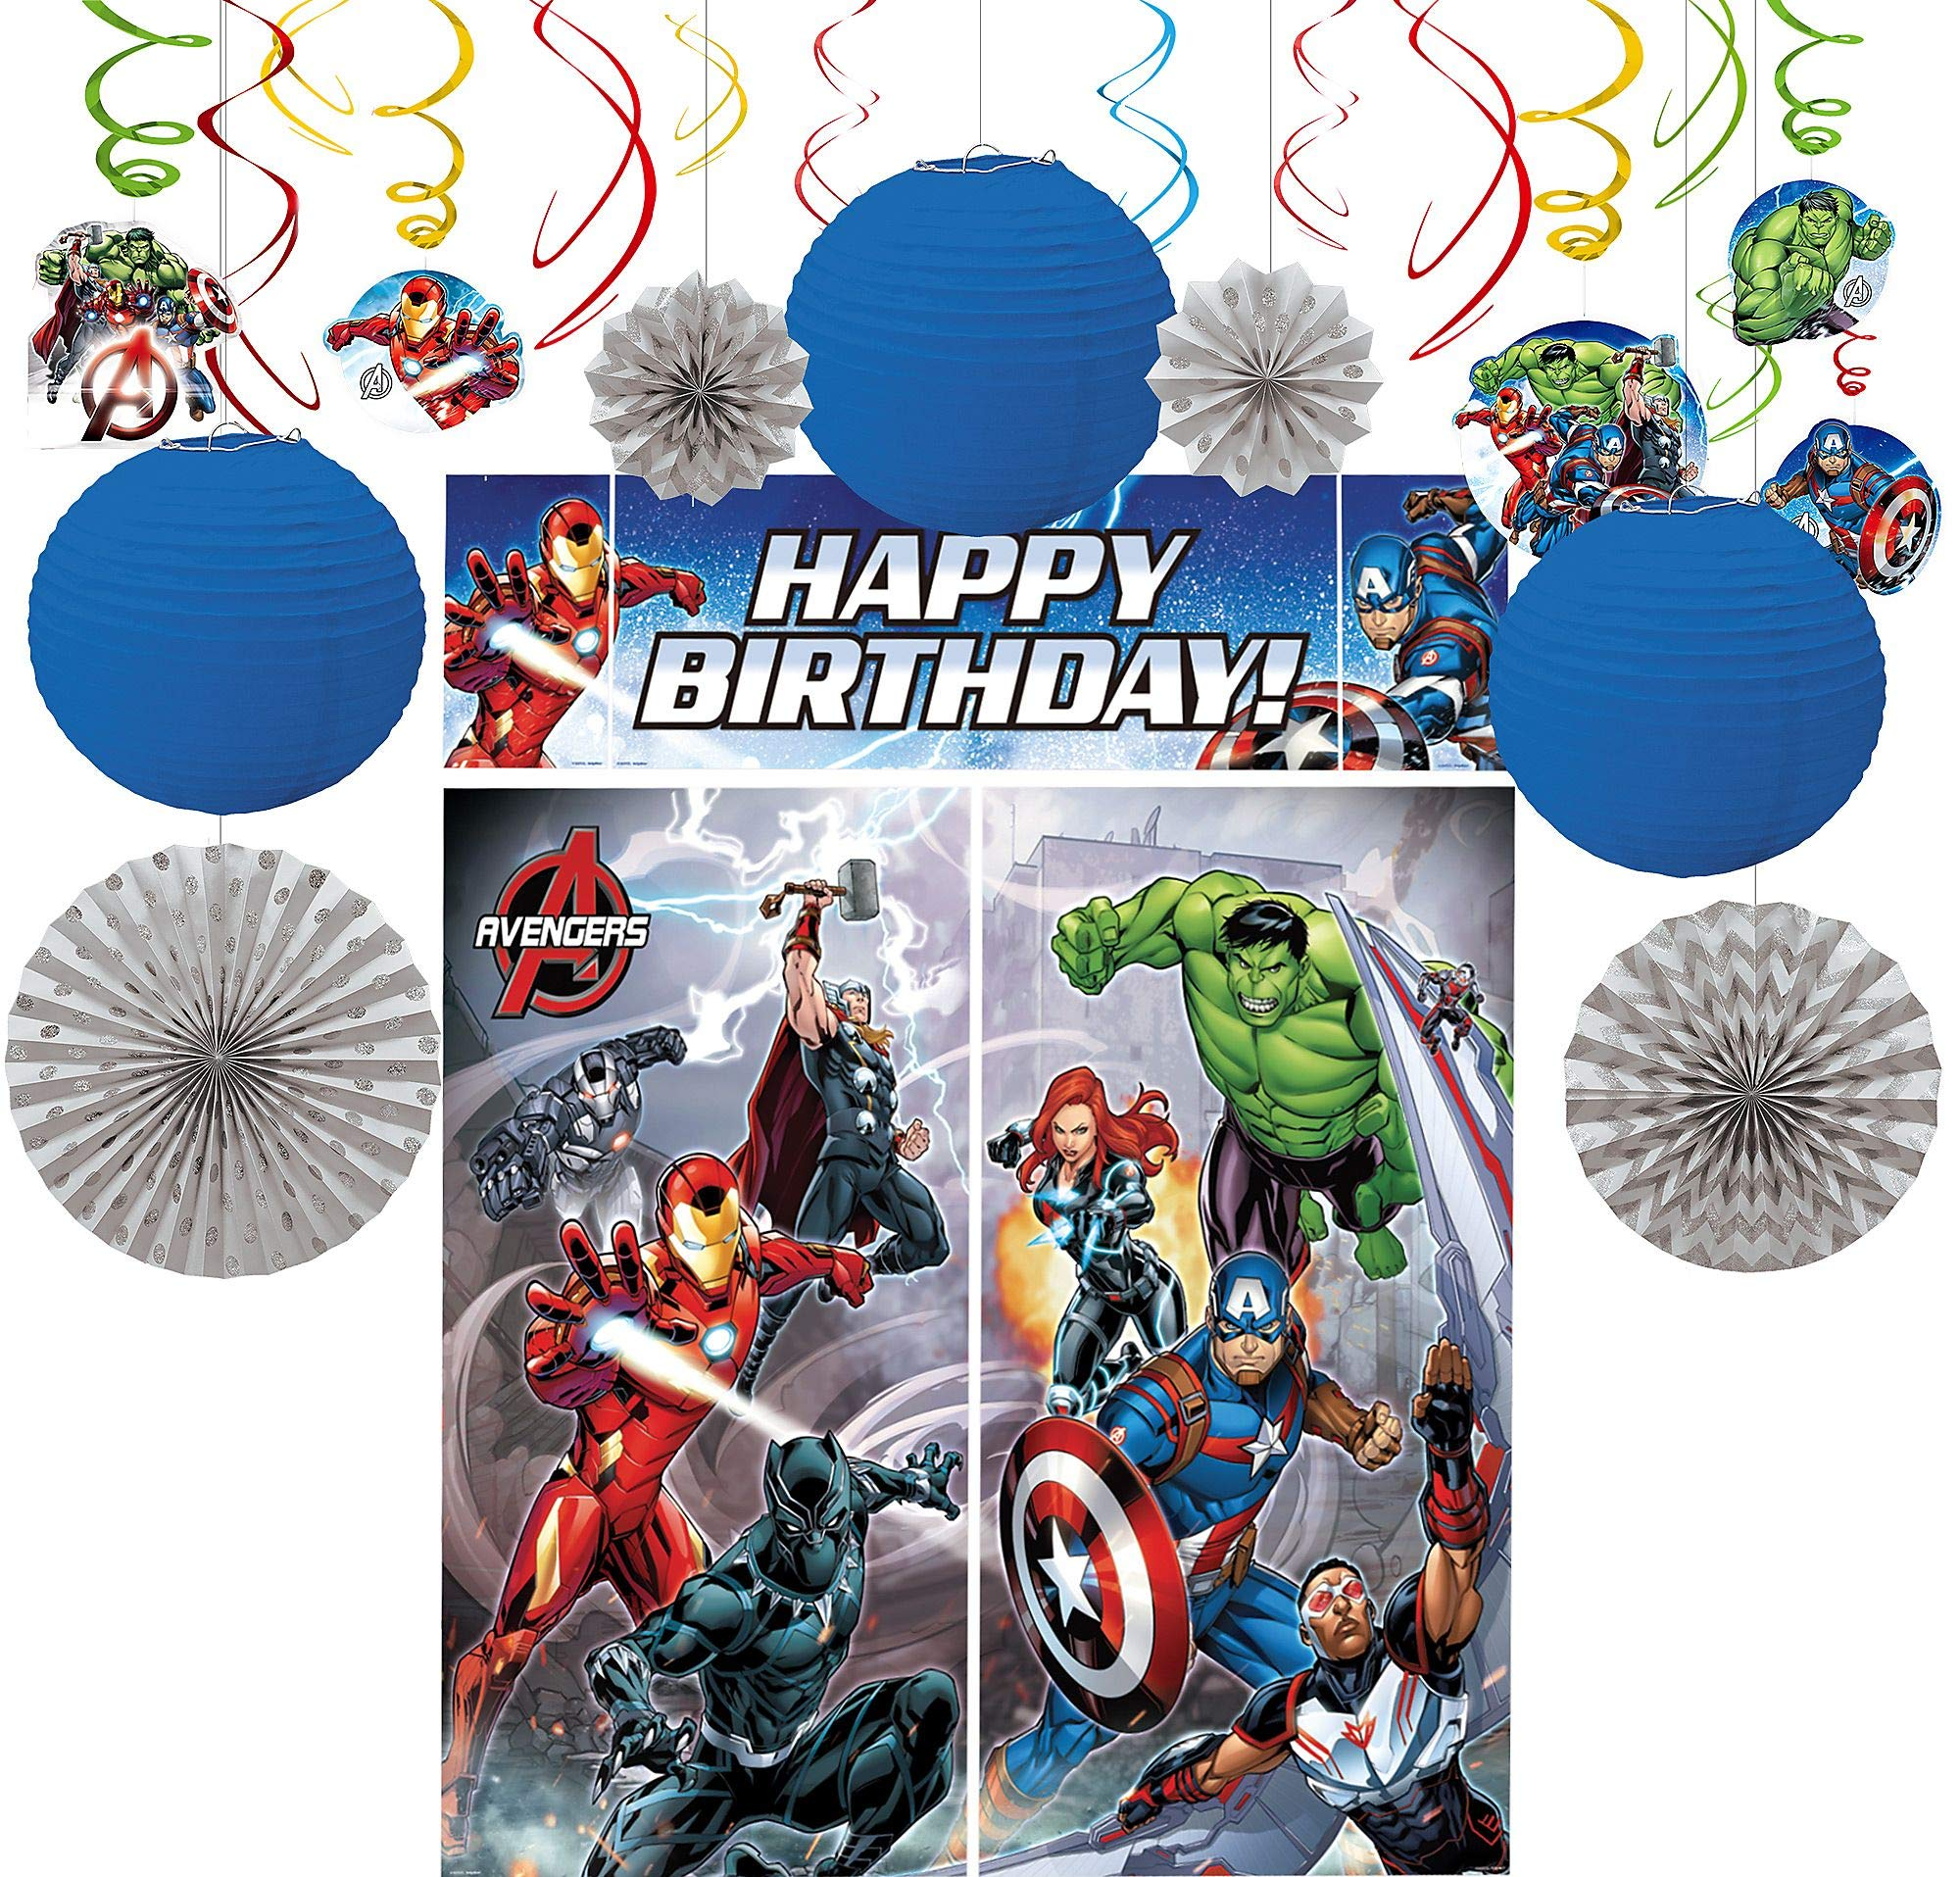 Party City Avengers Decorating Supplies, Include Paper Lanterns, Hanging Swirls and Fans, and a Photo Booth with Props